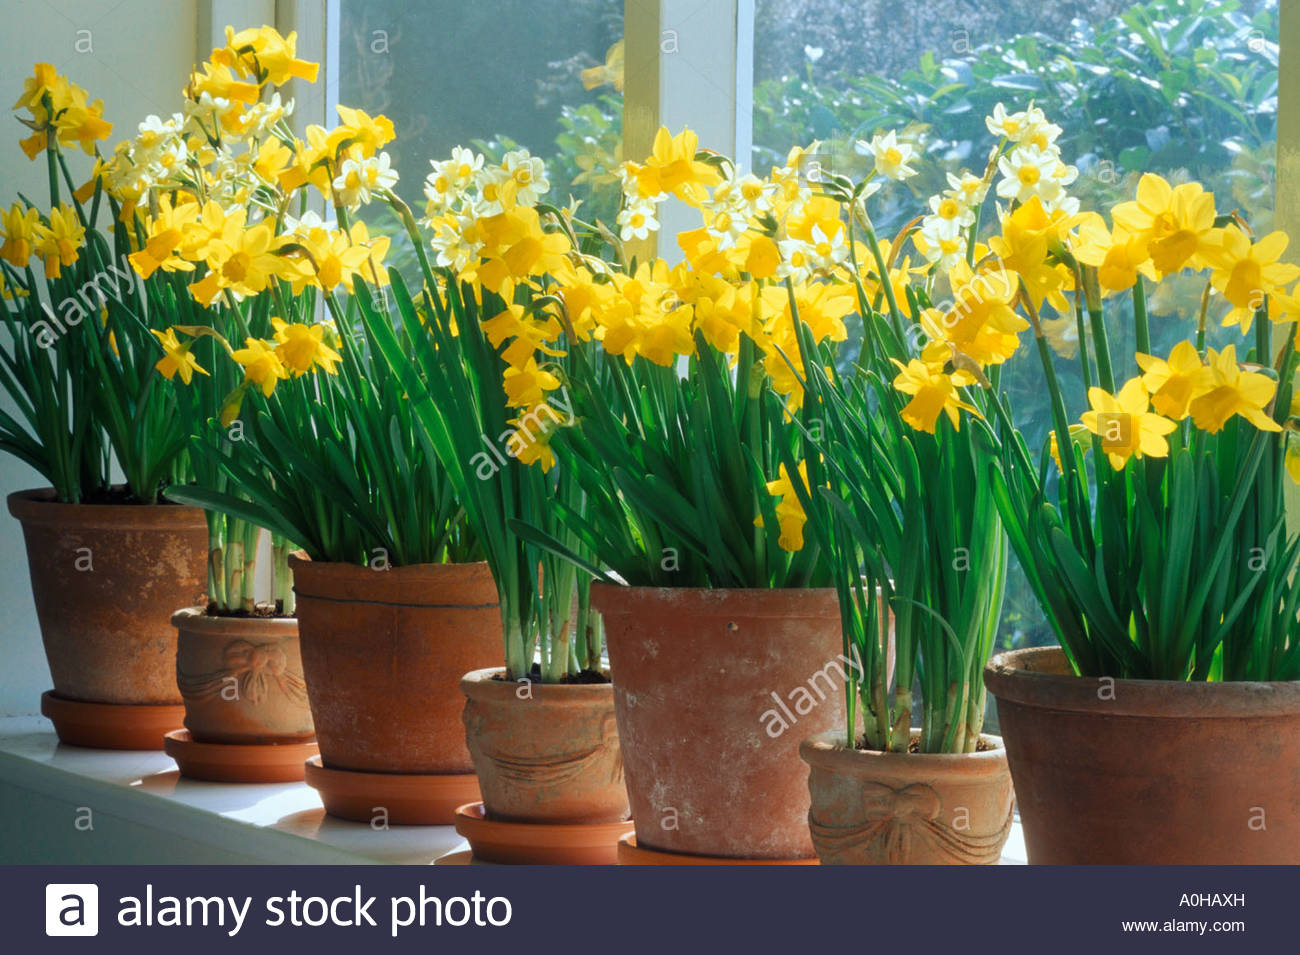 Image result for Images of indoor daffodils